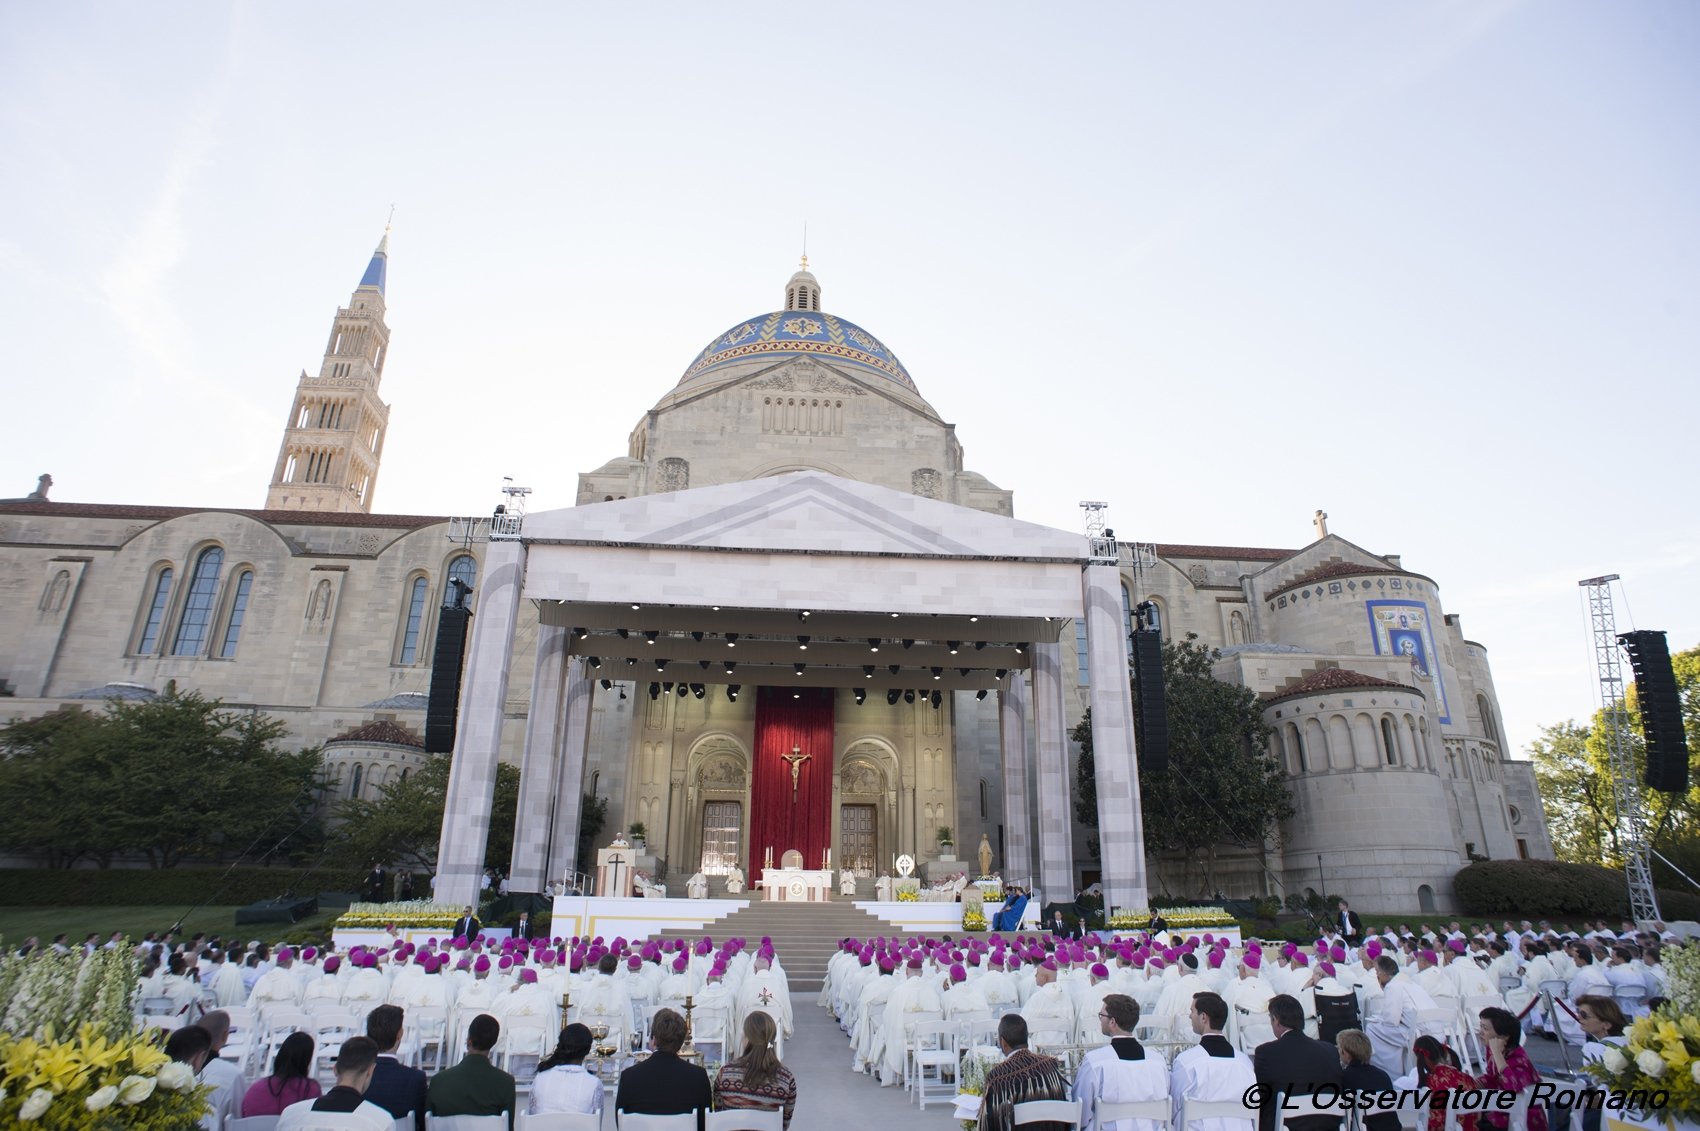 Canonization Mass for Friar Junipero Serra at the Basilica of the National Shrine of the Immaculate Conception